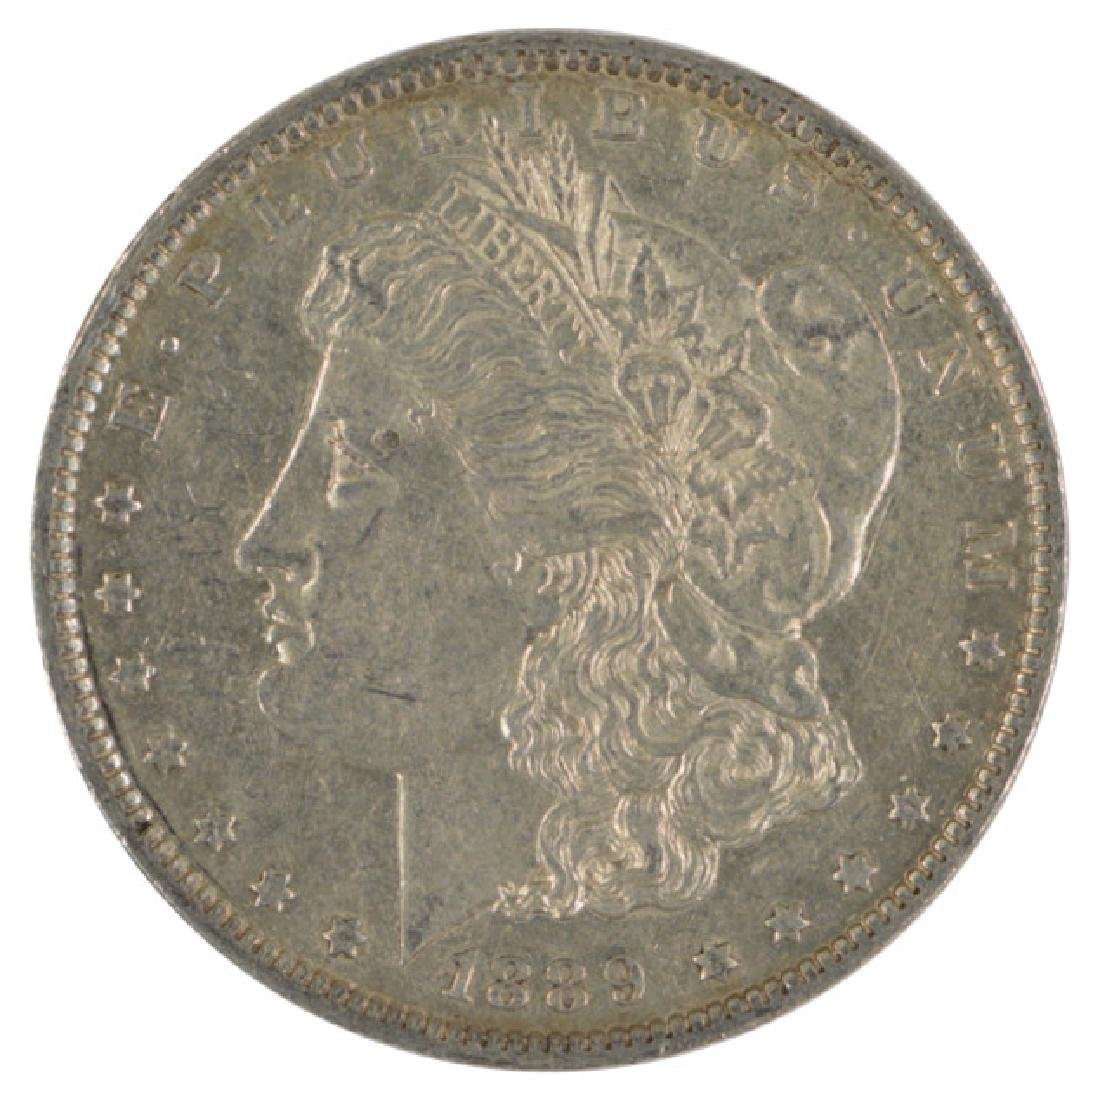 1889-O $1 Morgan Silver Dollar Coin